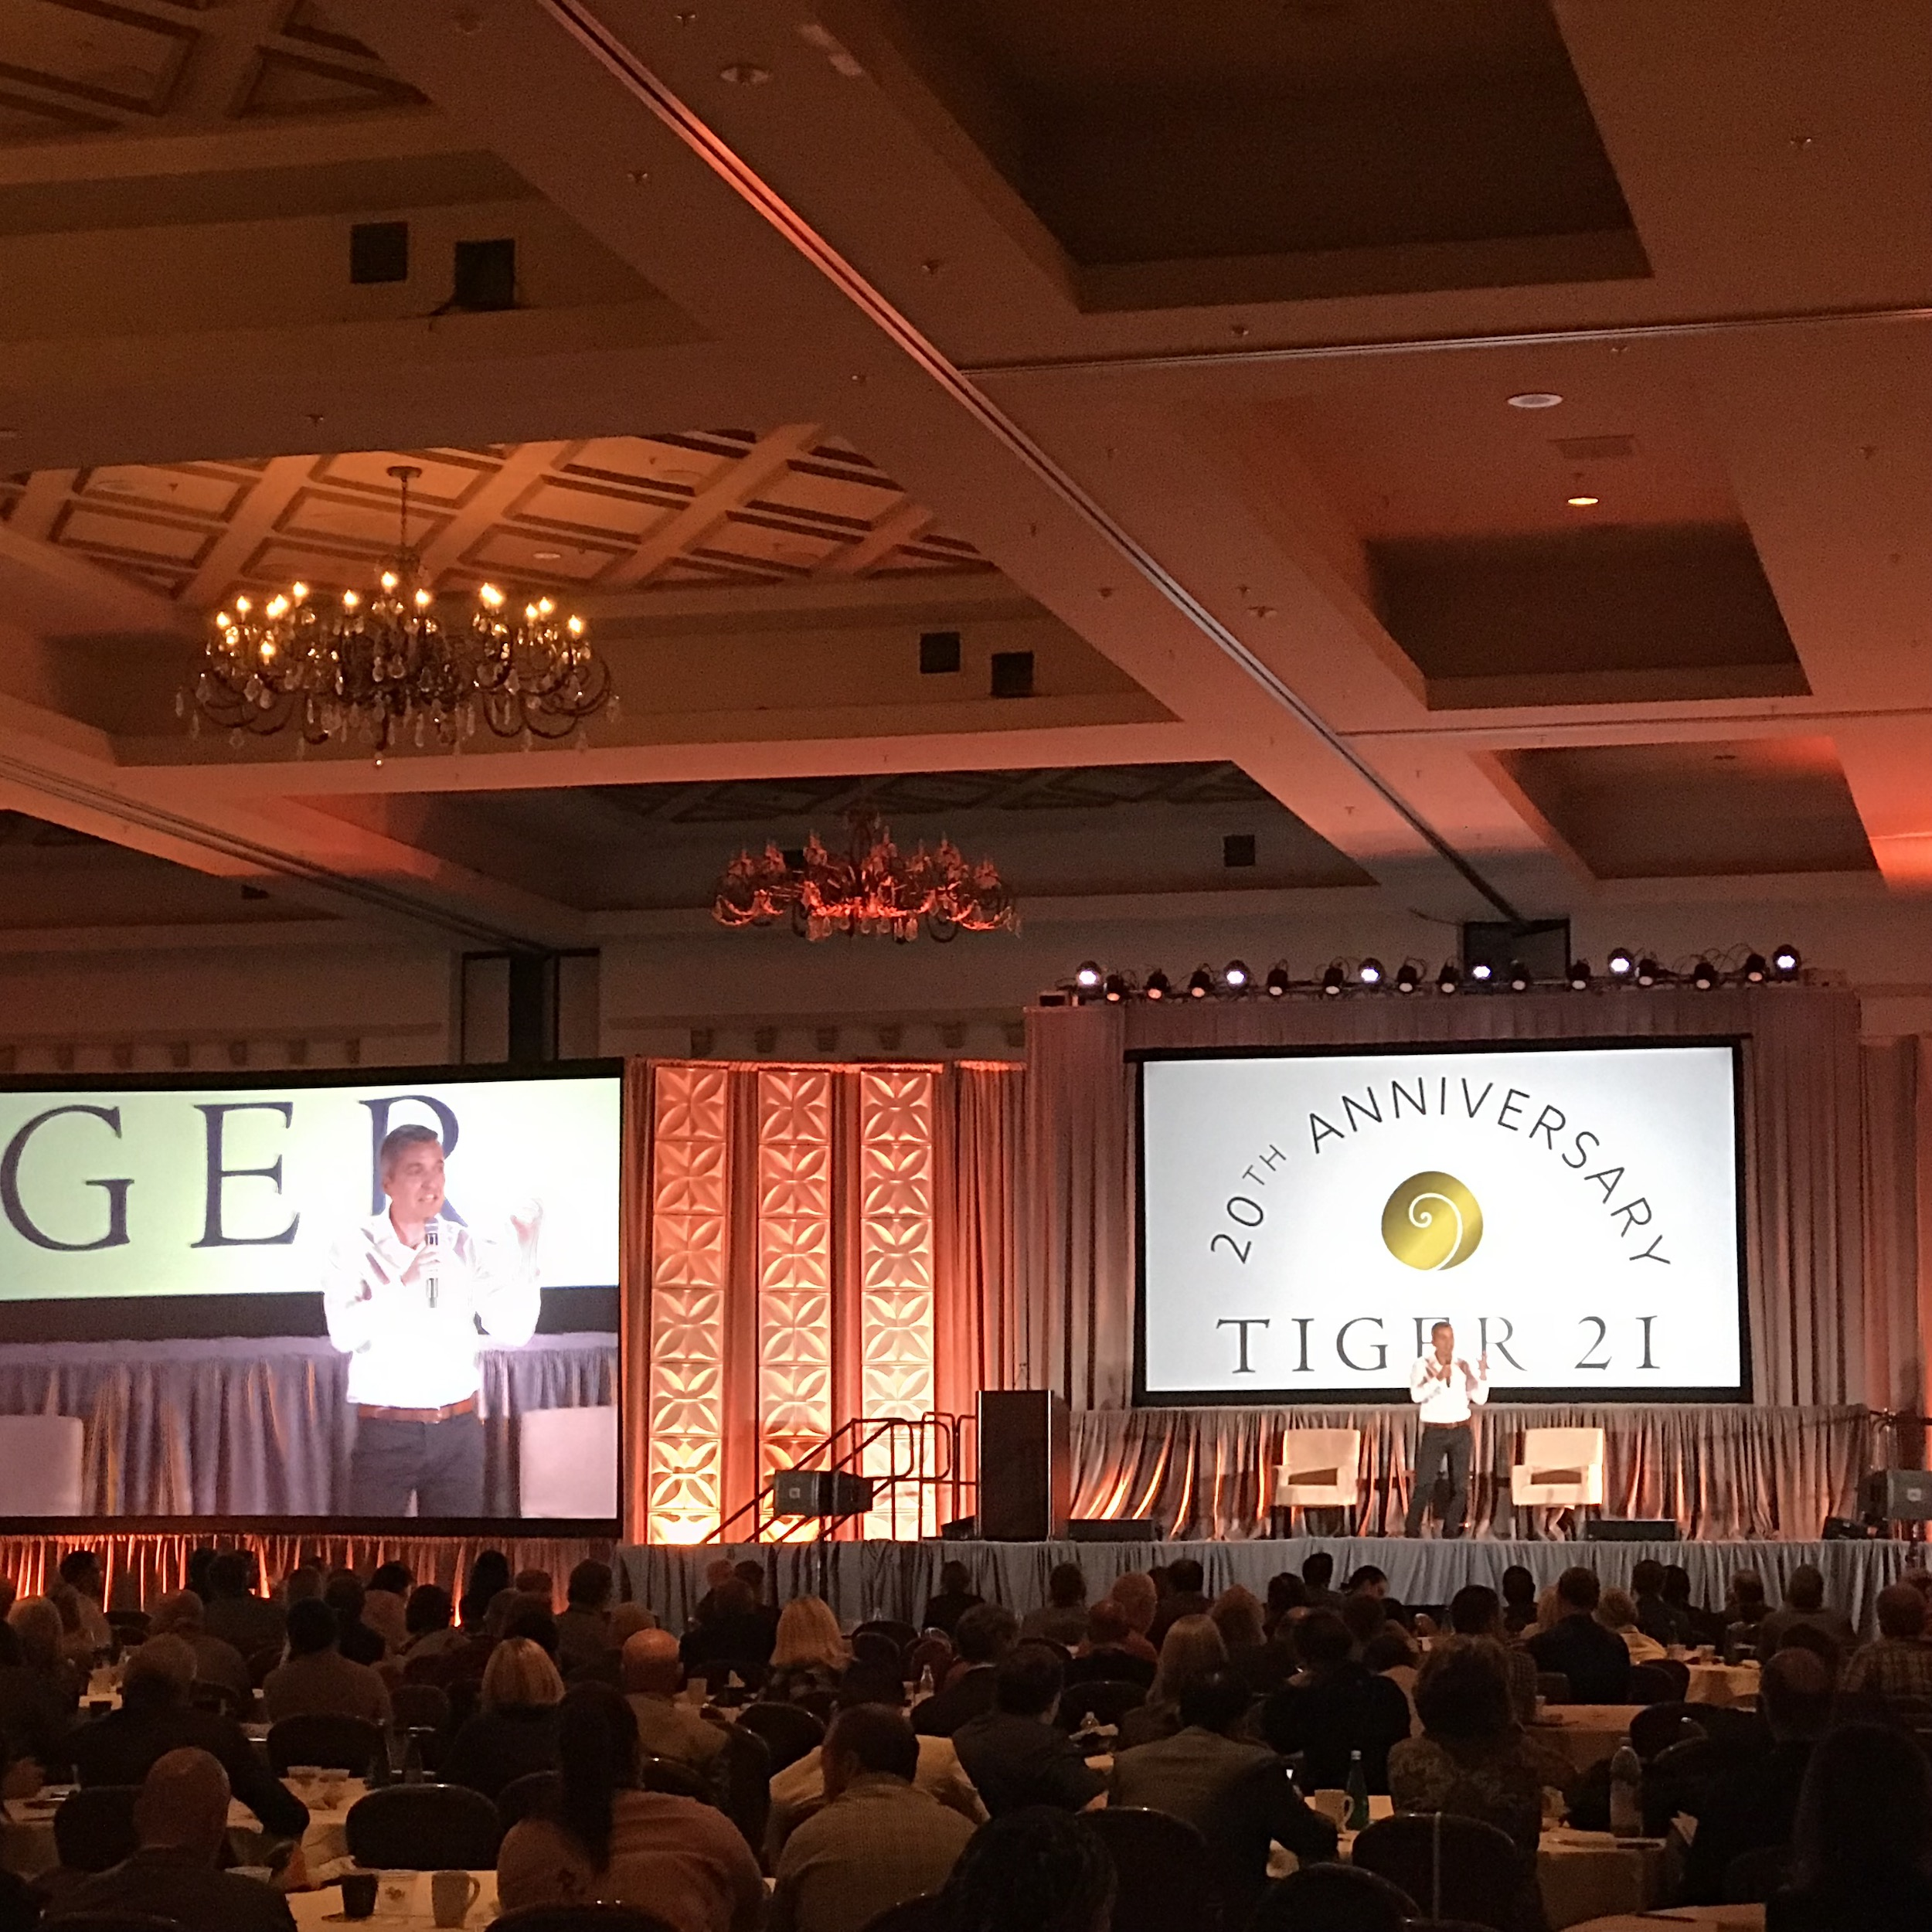 Gregor Jeffrey delivers his keynote at the TIGER 21 Annual Conference - Boca Raton, Florida